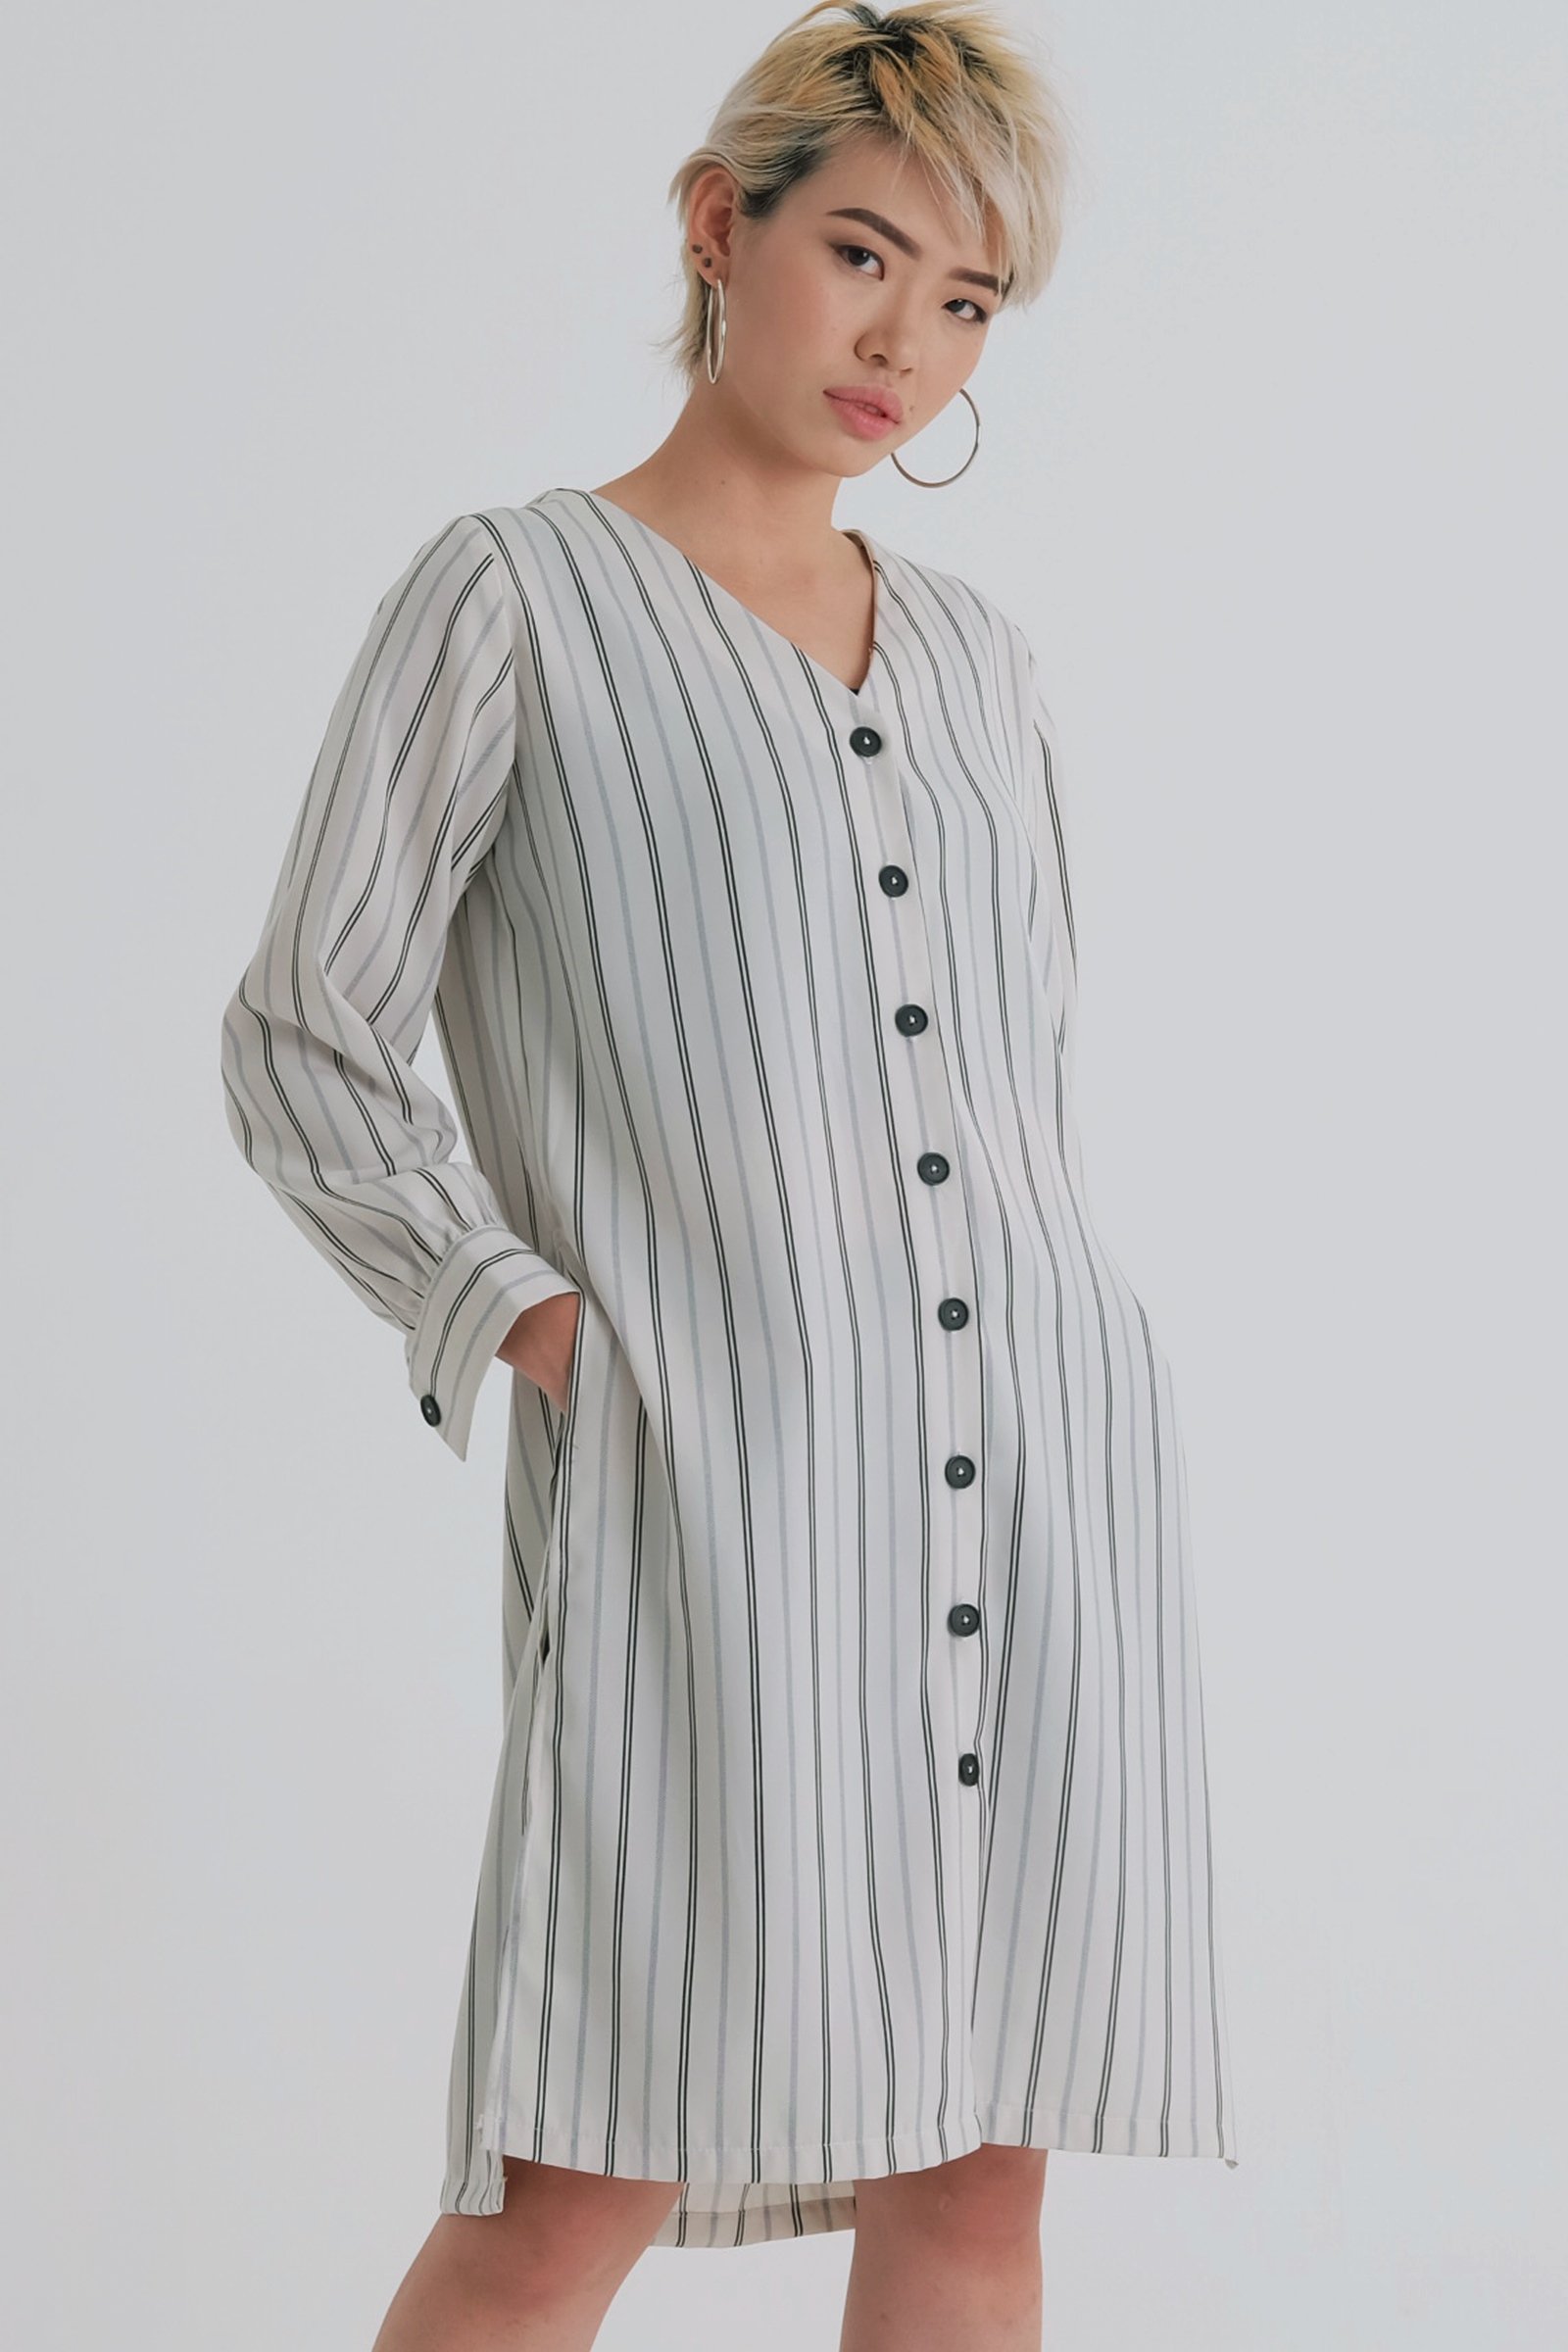 Picture of Bolton Slit Shirt IvoryStripe